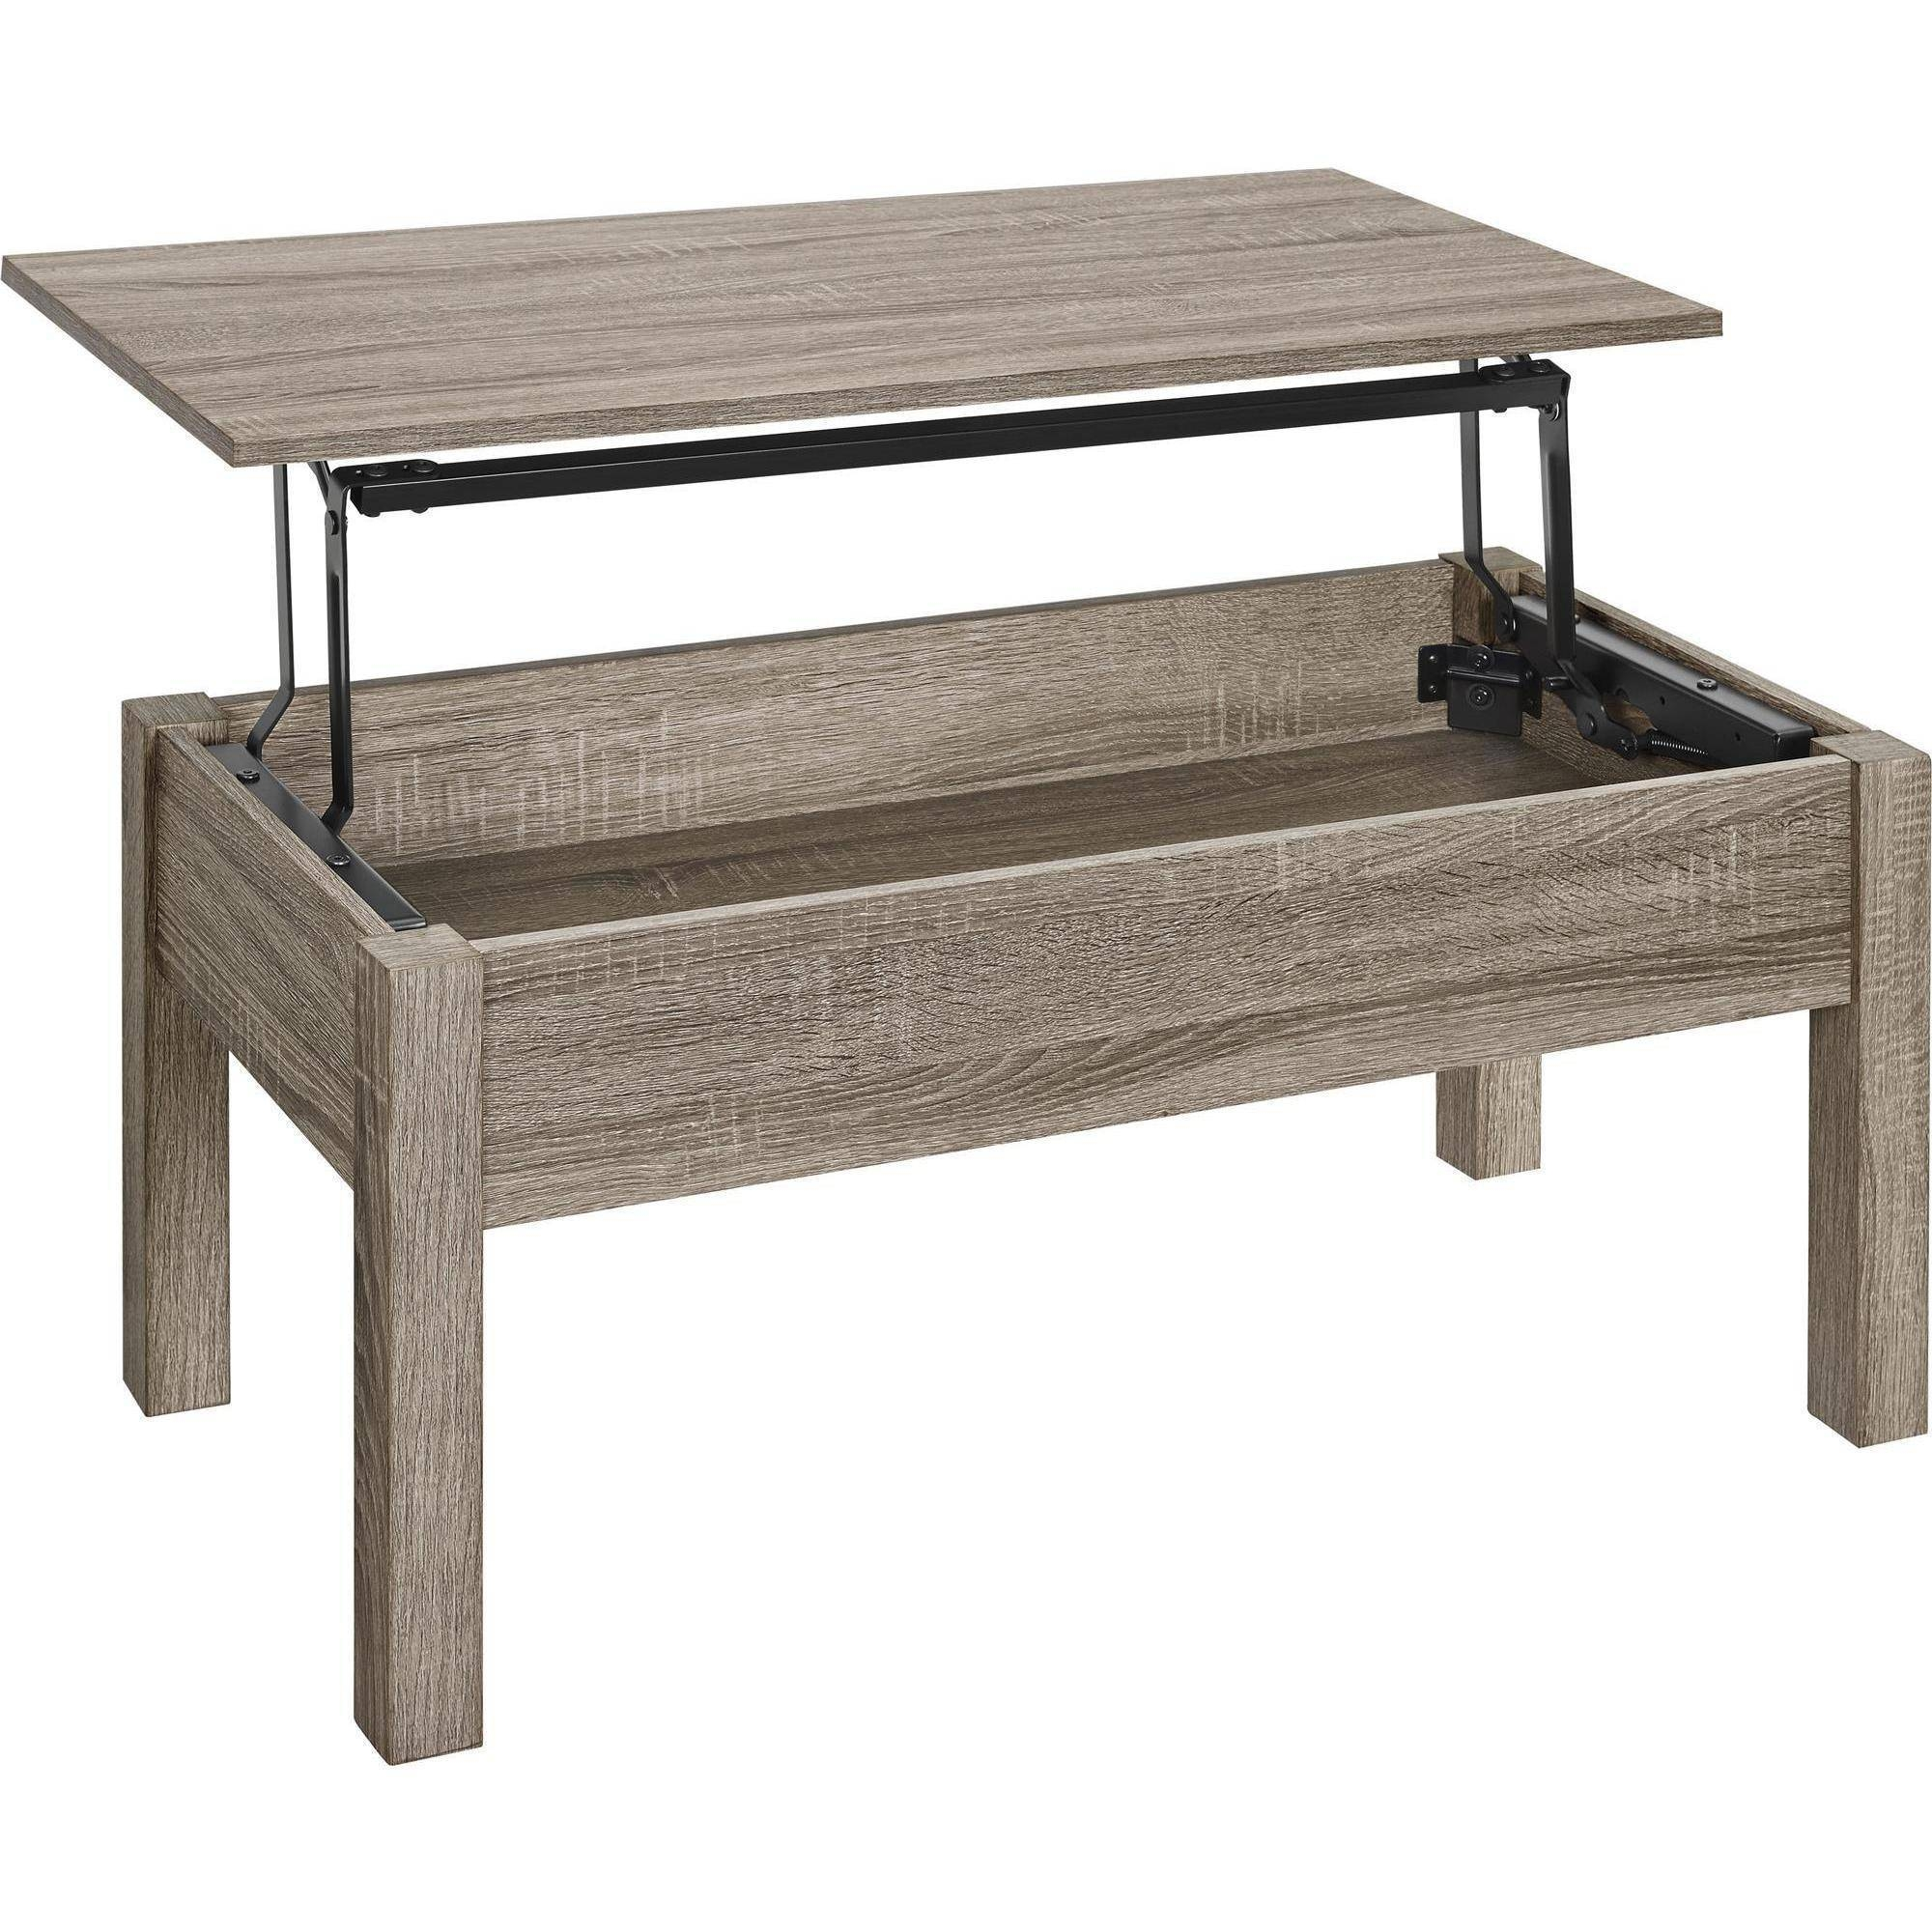 Mainstays Lift-Top Coffee Table, Multiple Colors - Walmart pertaining to Hinged Top Coffee Tables (Image 20 of 30)